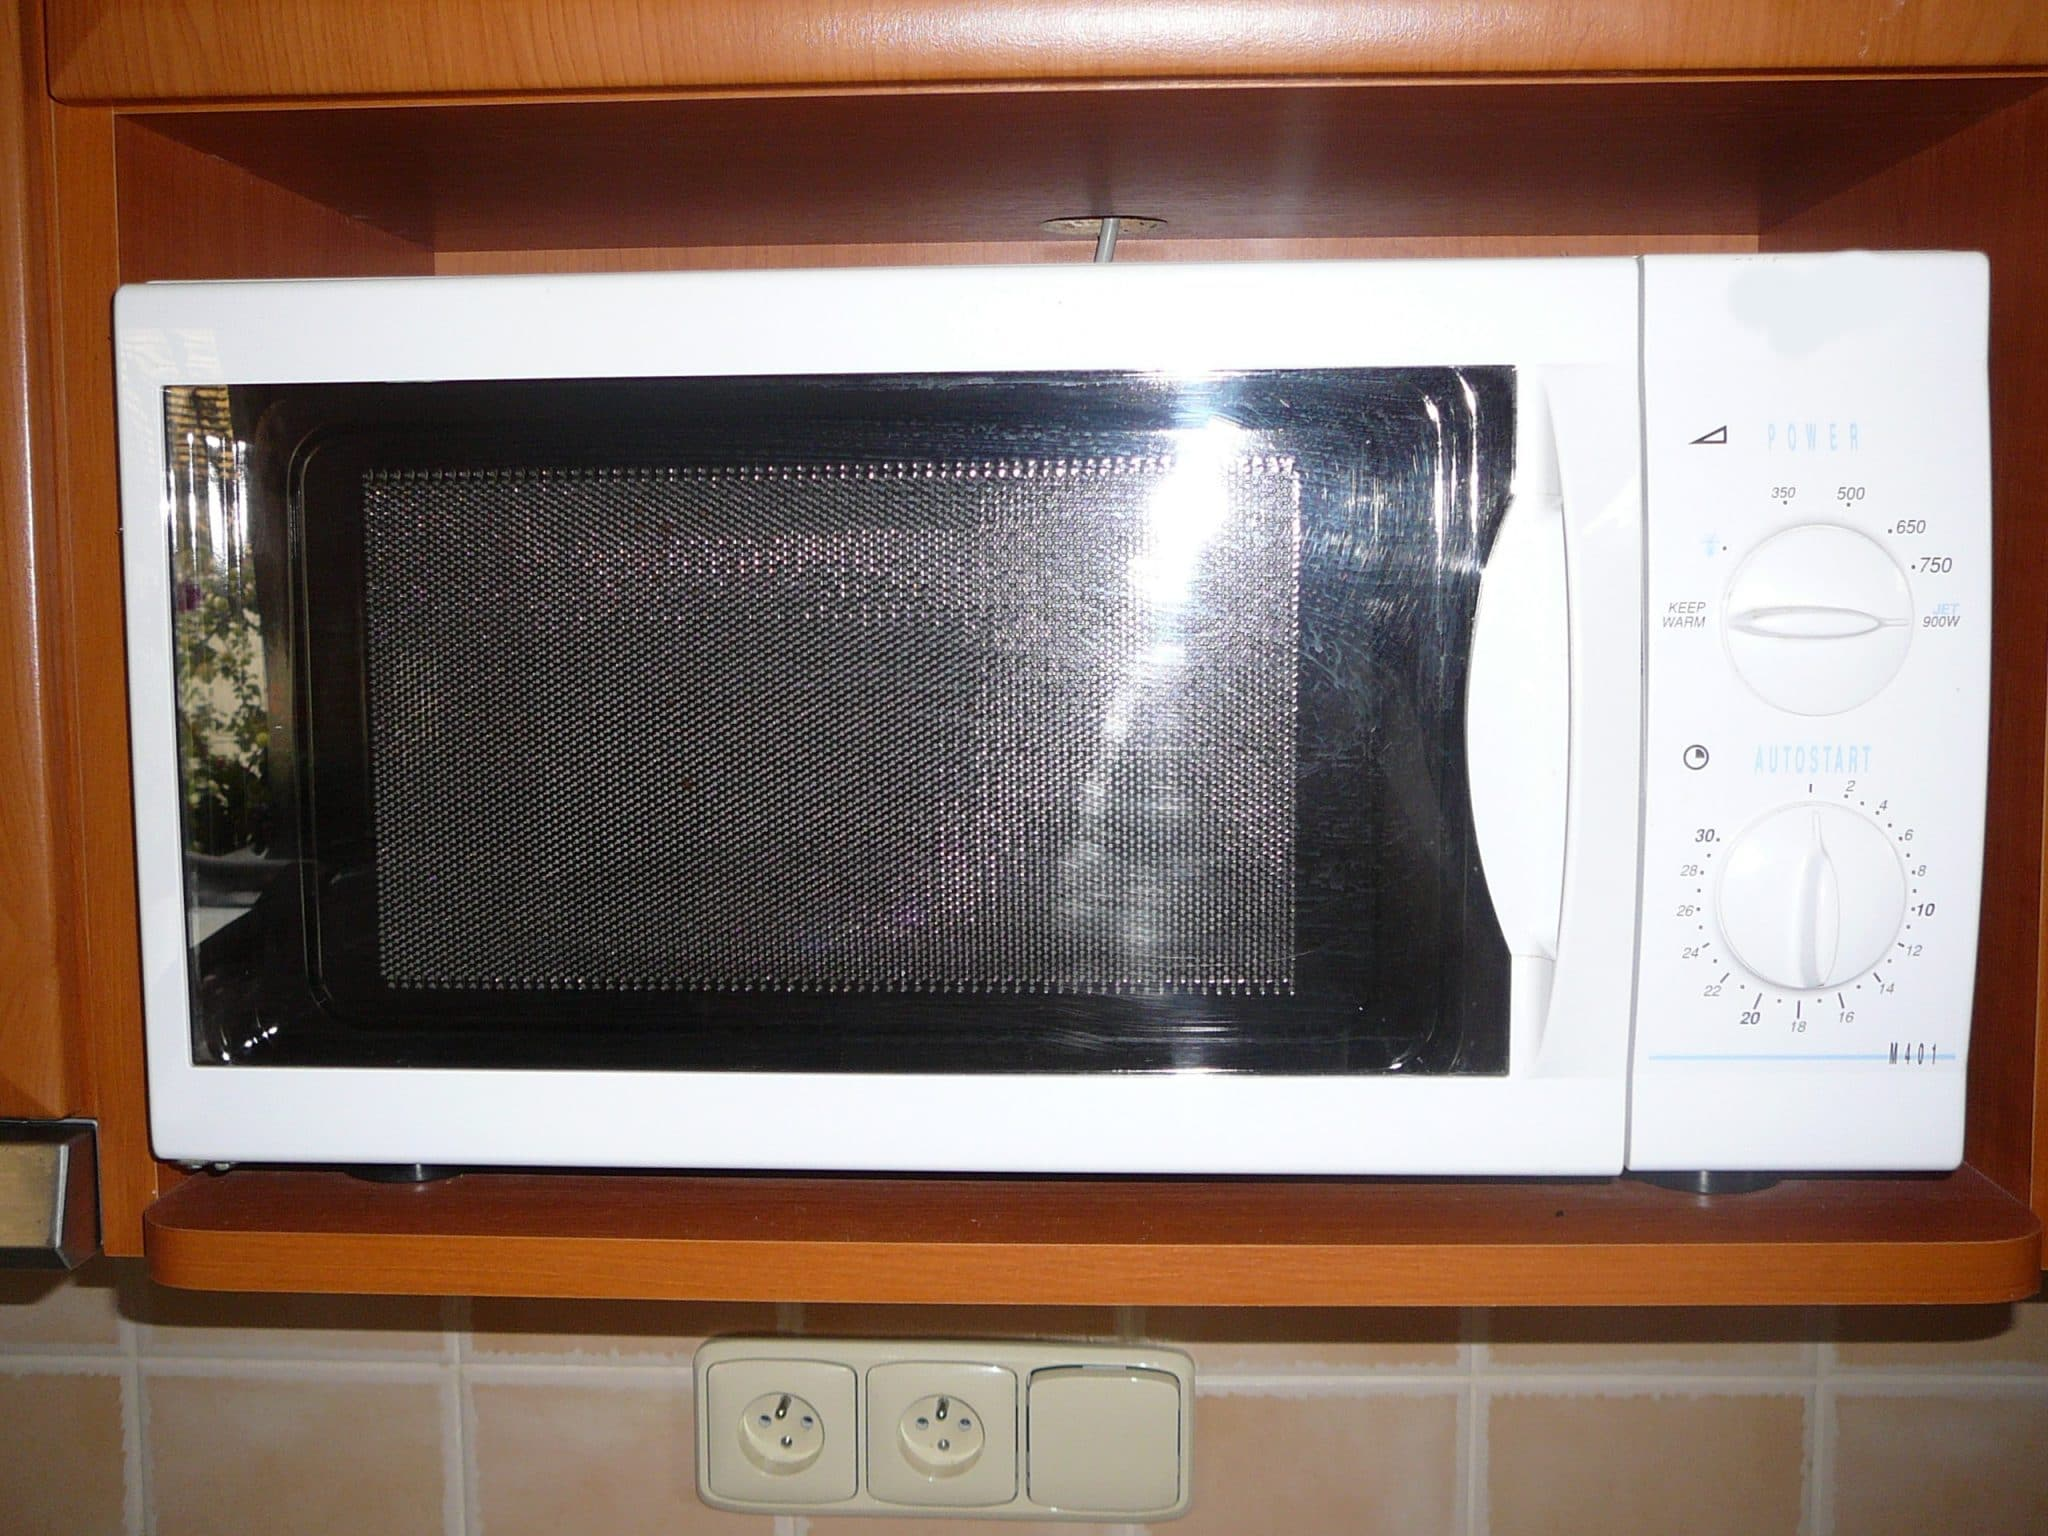 countertop oven for baking, defrosting oven